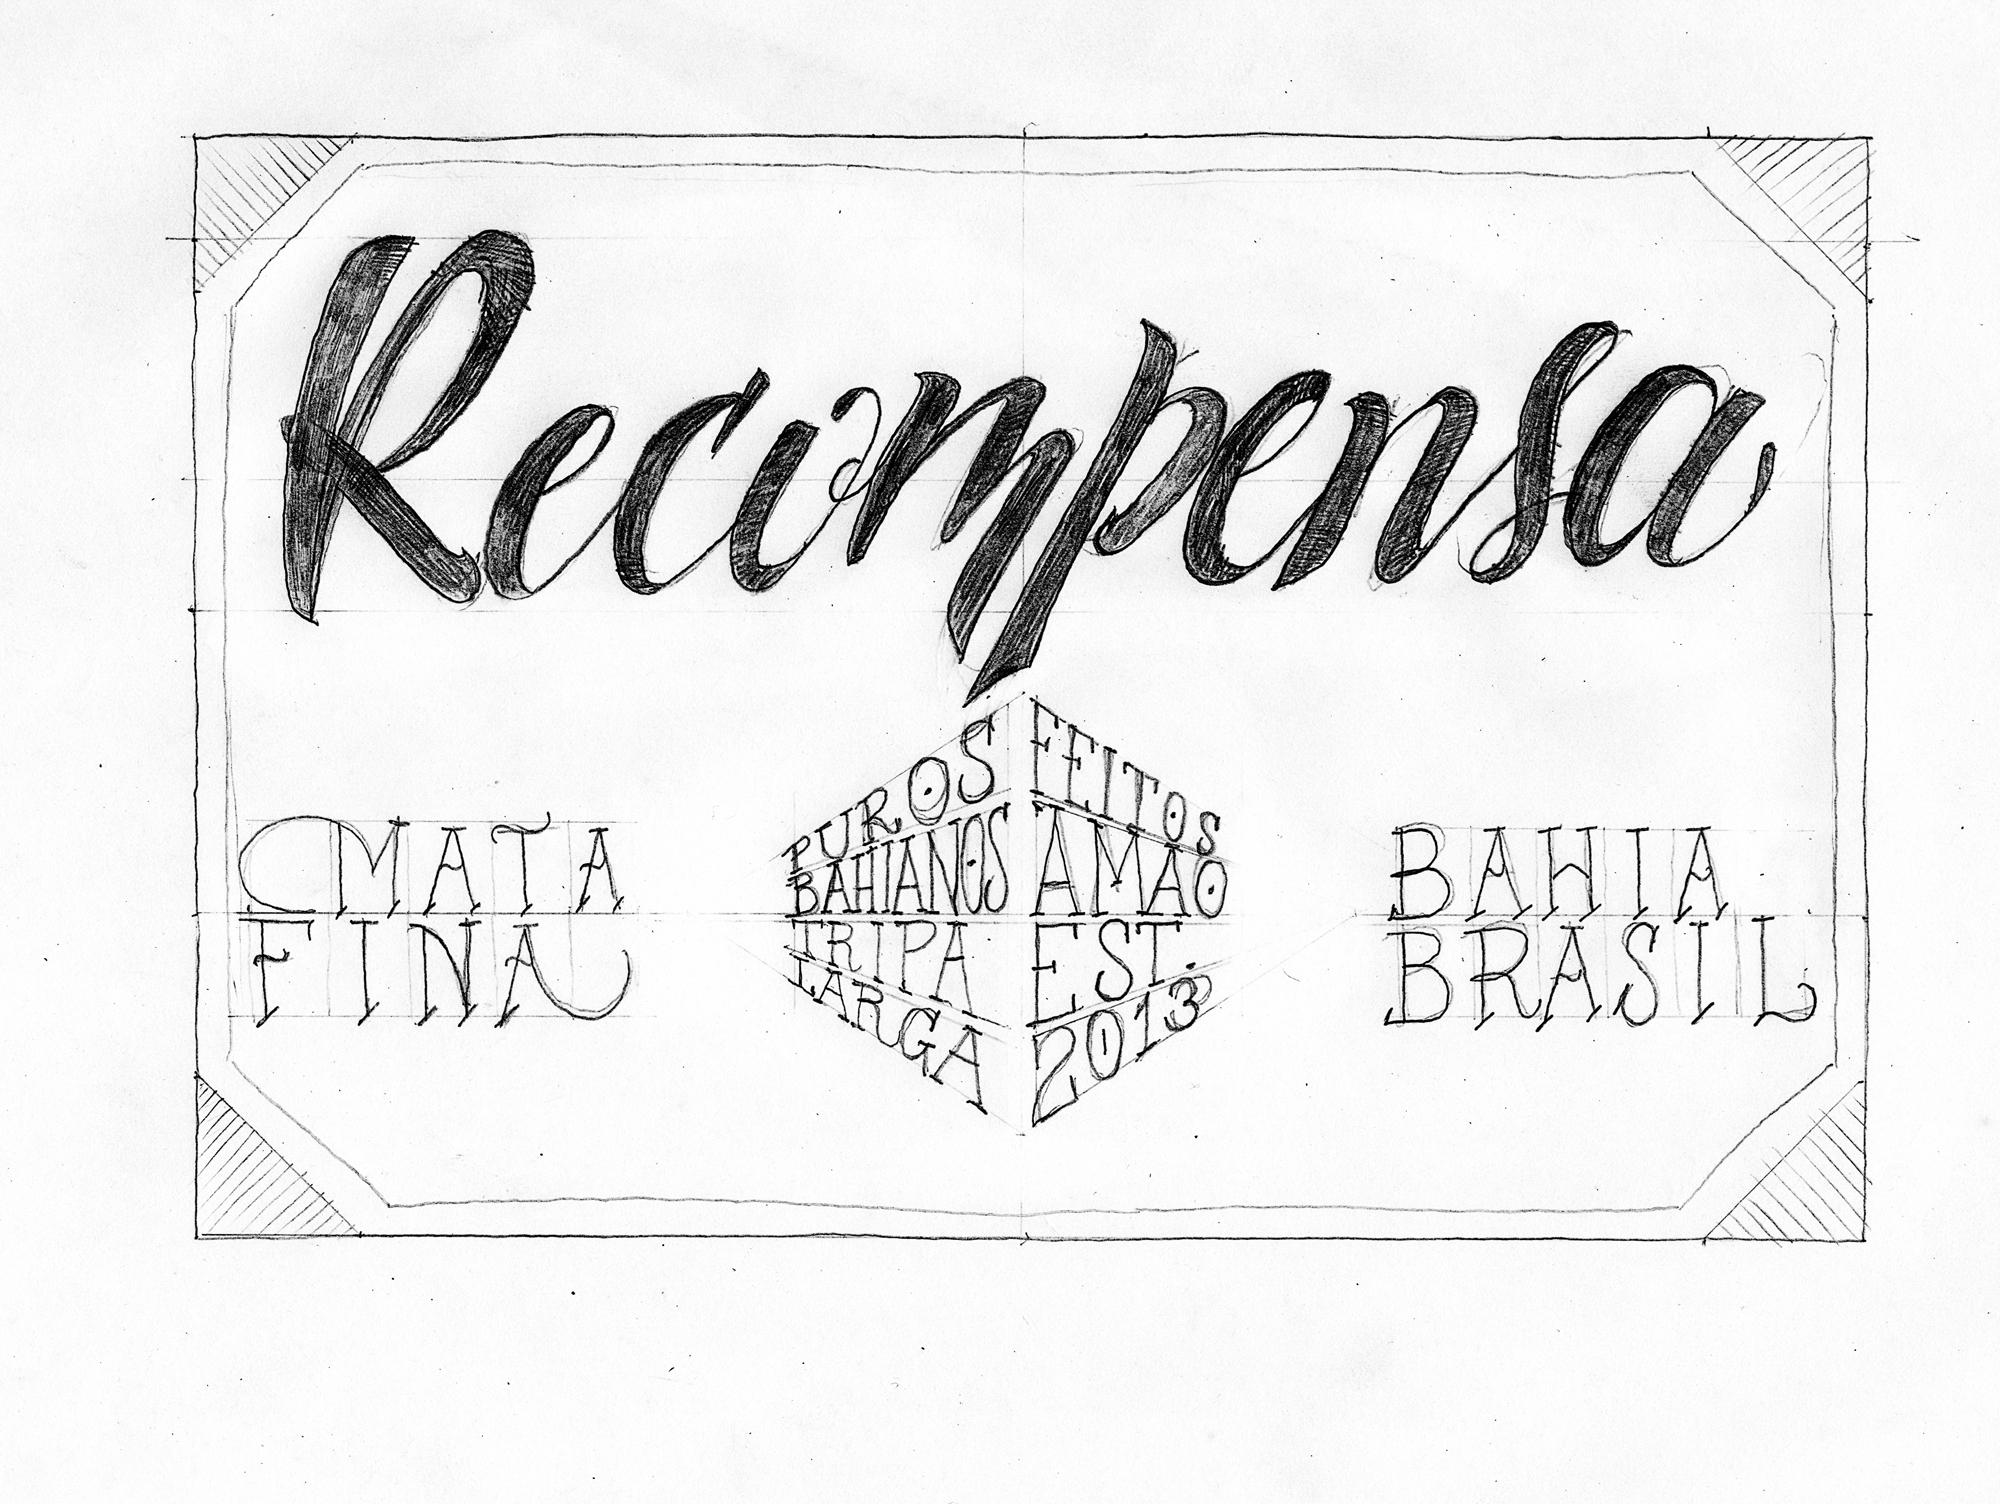 Recompensa Cigars - image 5 - student project